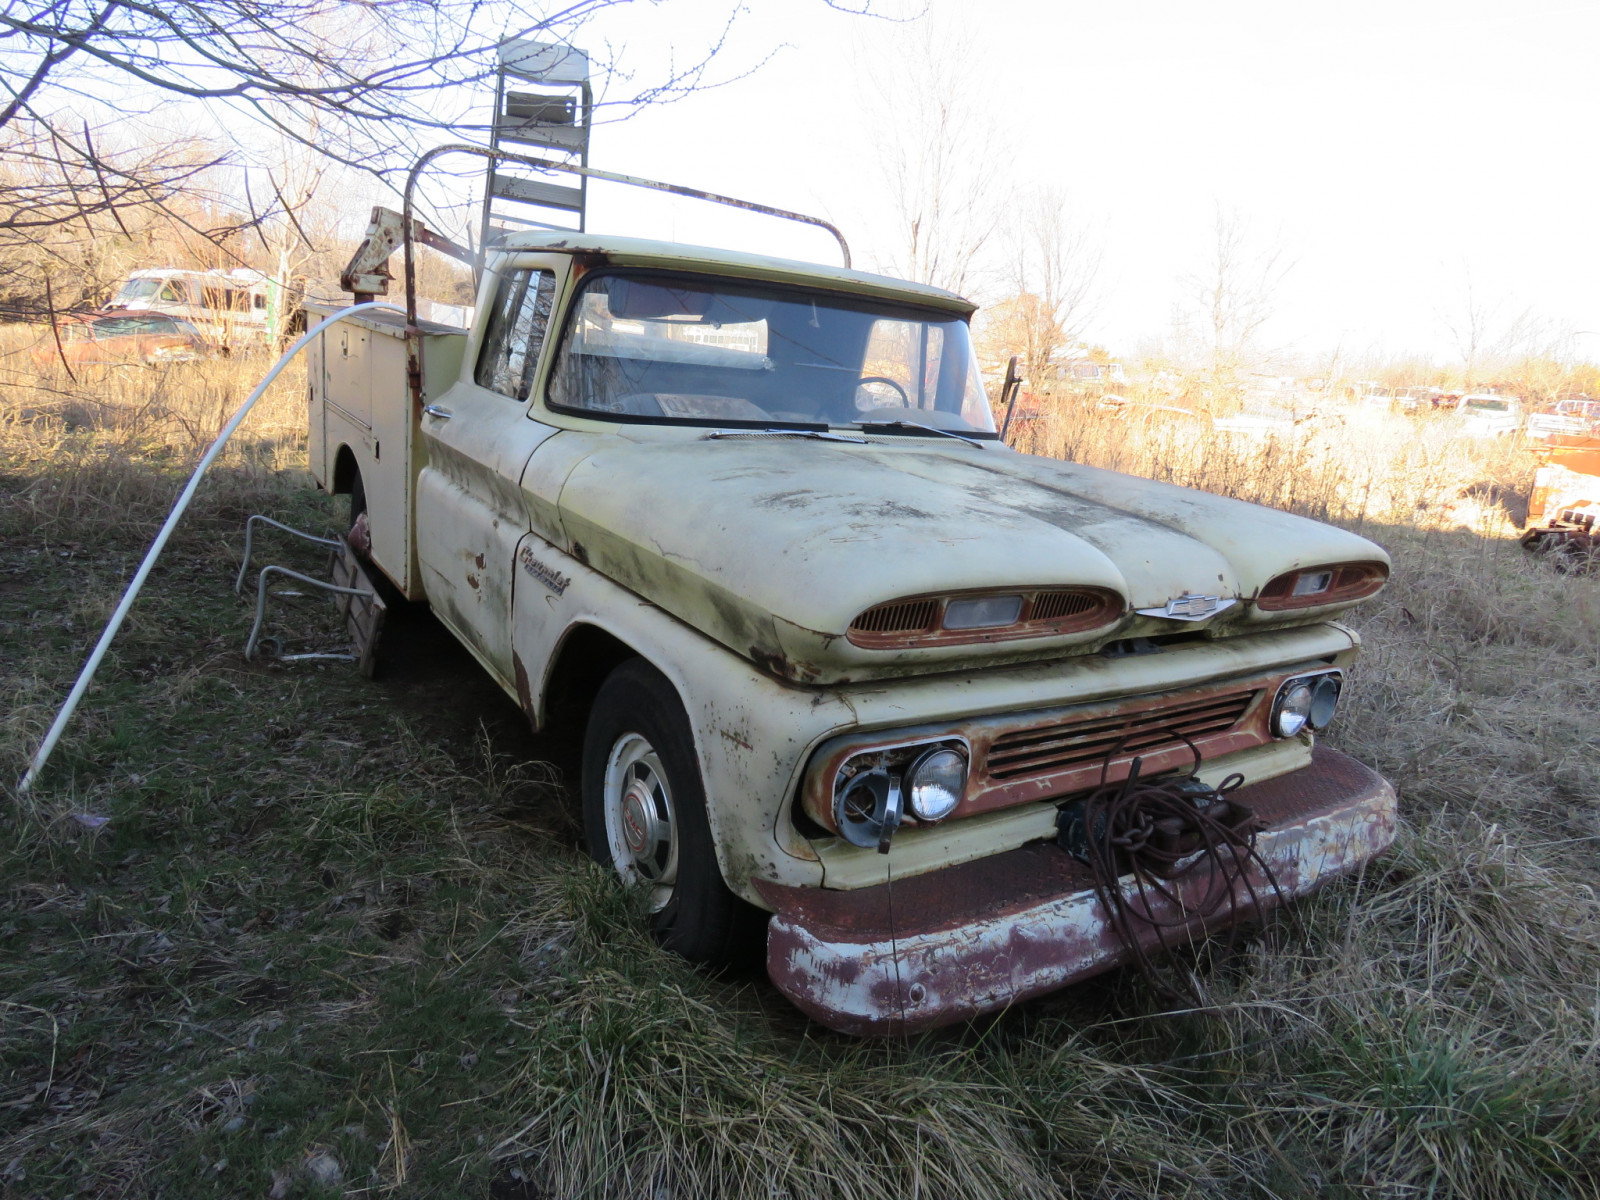 Chevrolet Pickup with Utility Box - Image 2